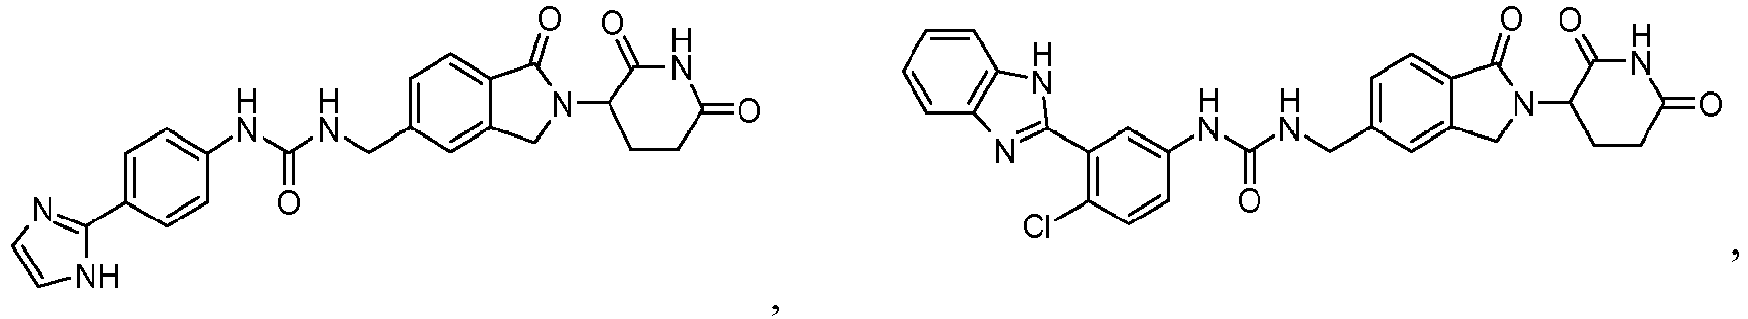 ISOINDOLINE COMPOUNDS FOR USE IN THE TREATMENT OF CANCER - Patent